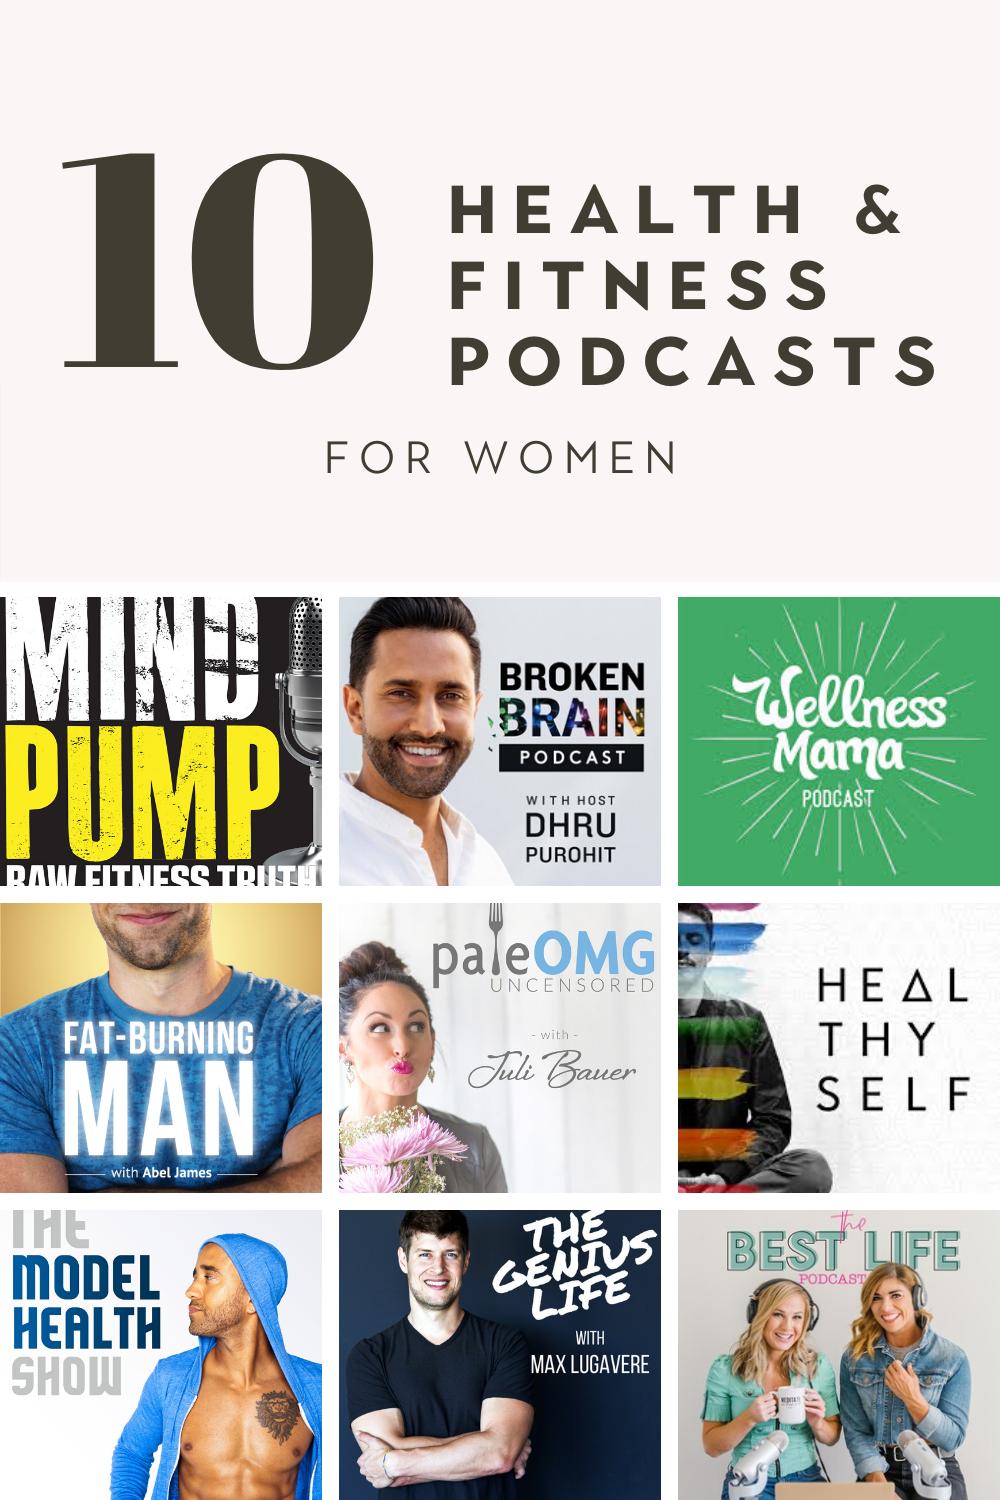 Images of nine different podcast with 10 health and fitness podcasts for women writing